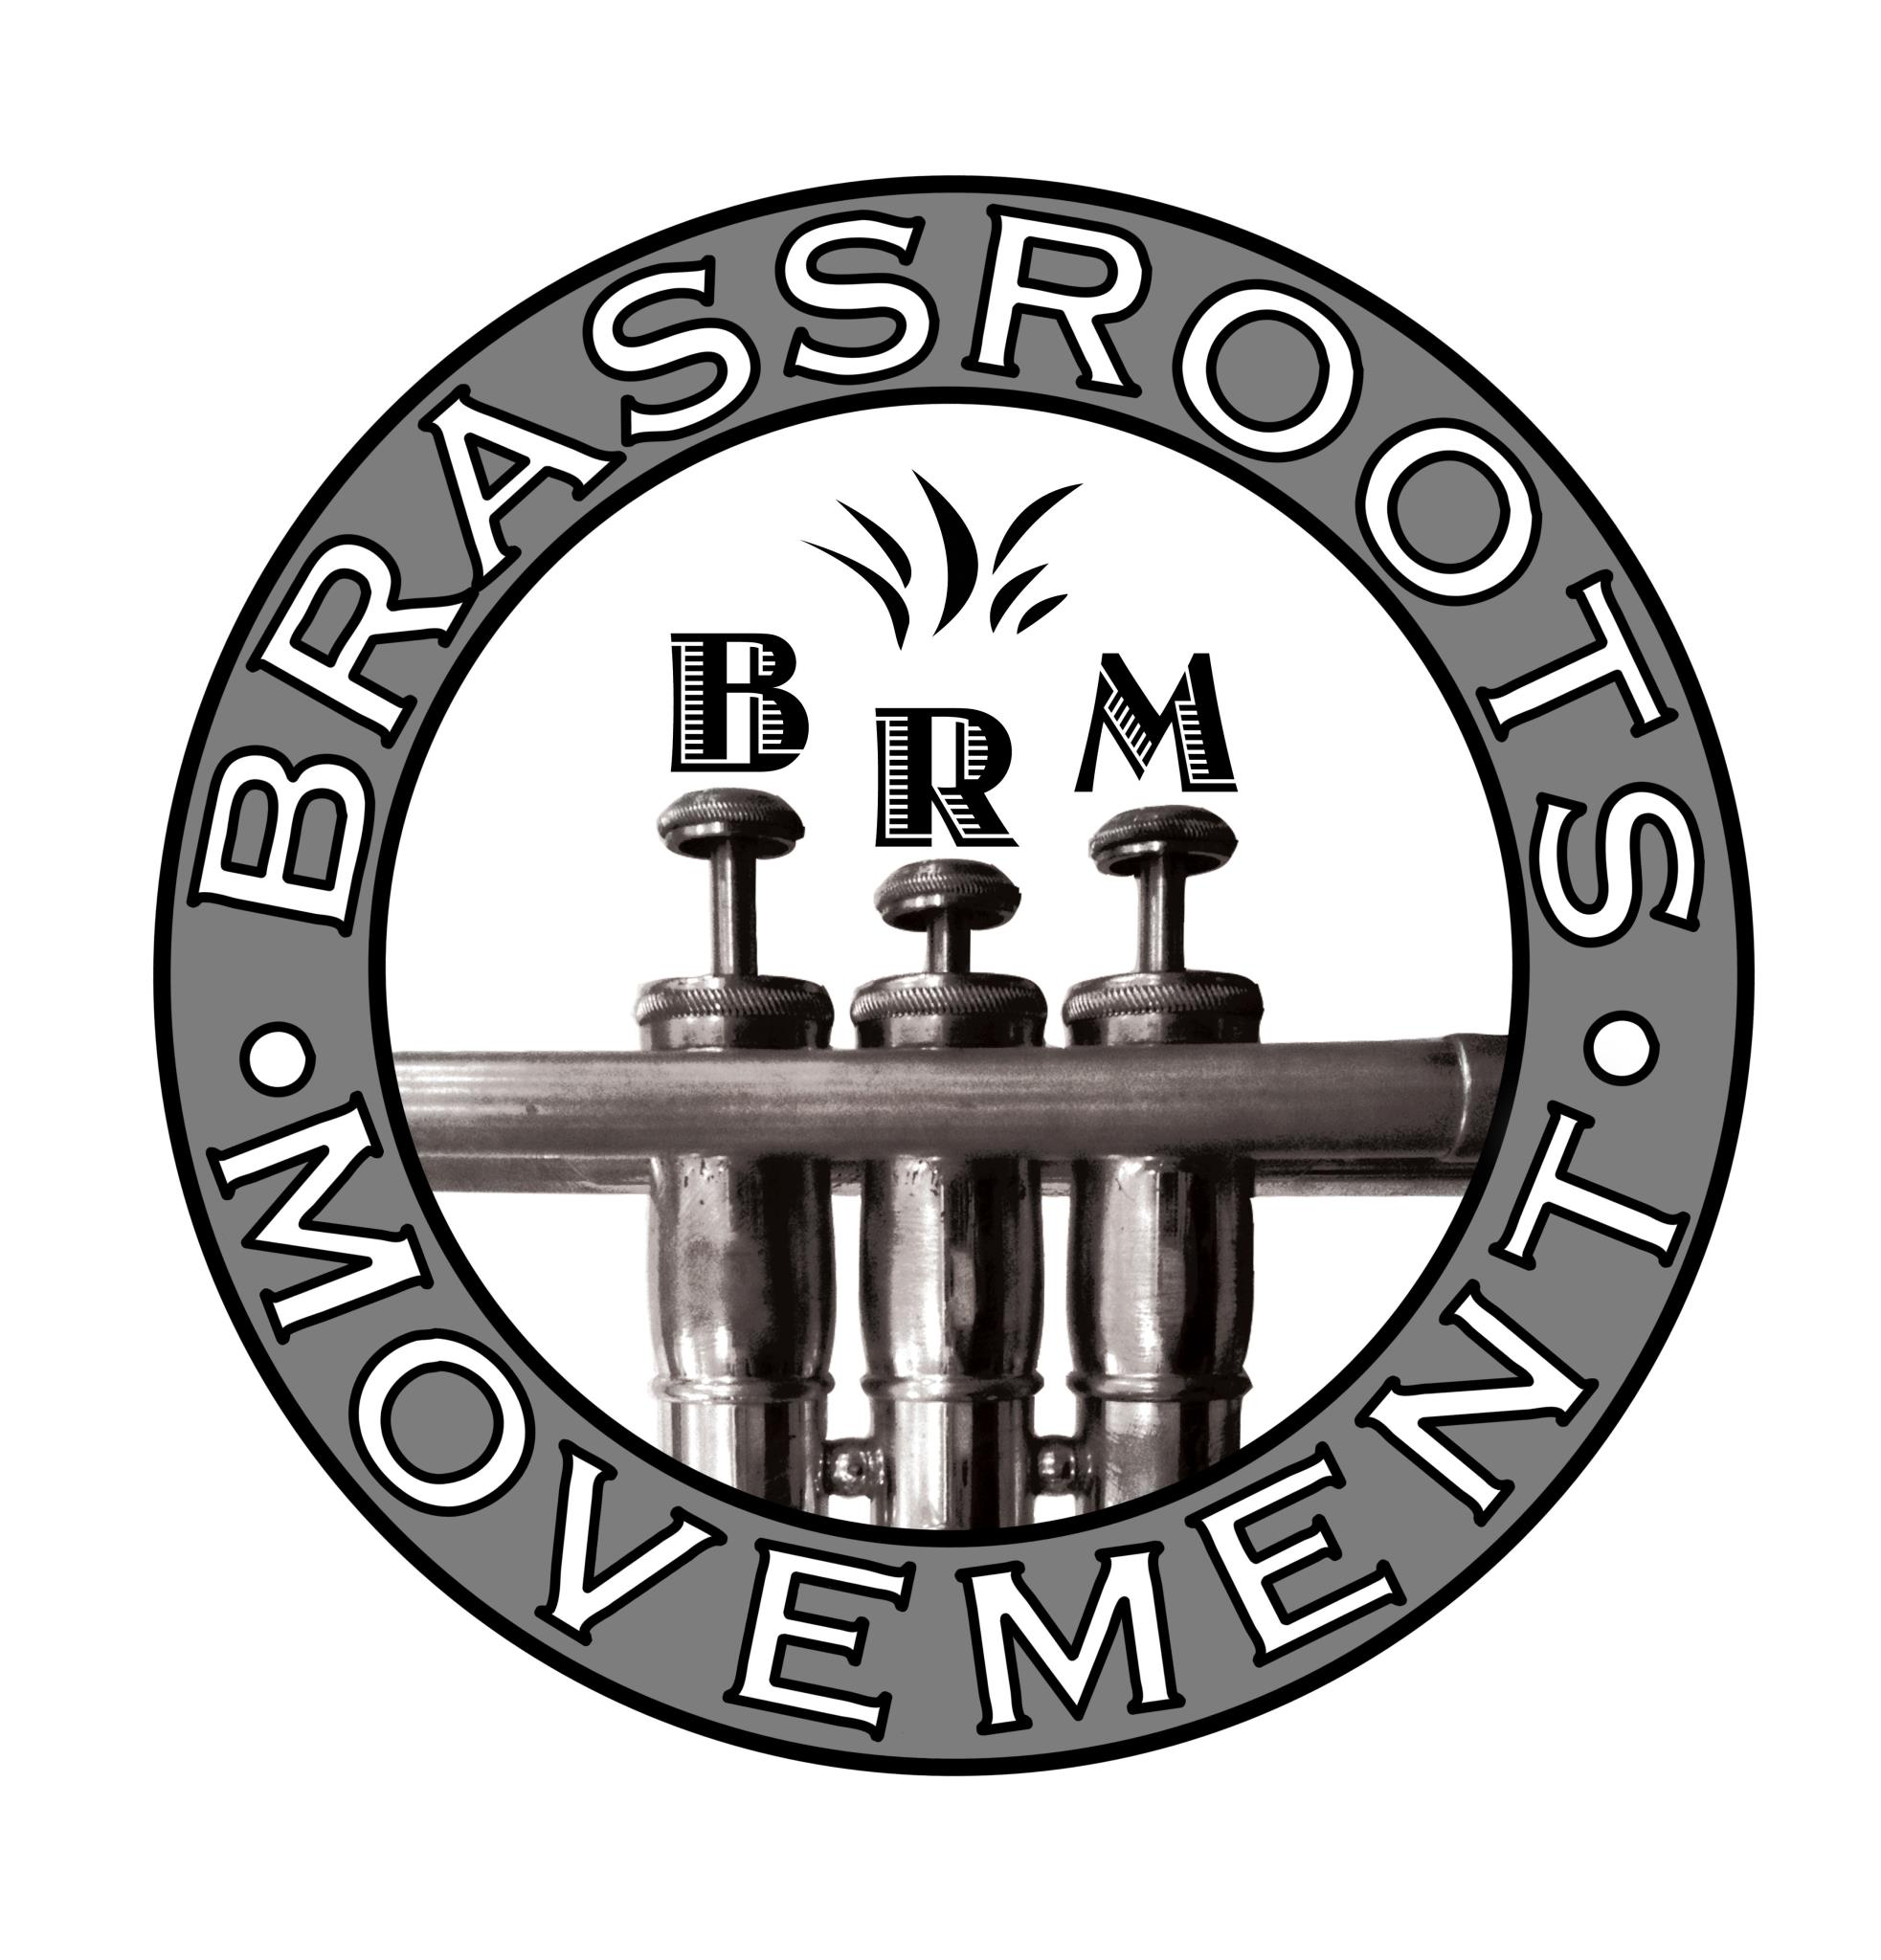 The Brass Roots Movement